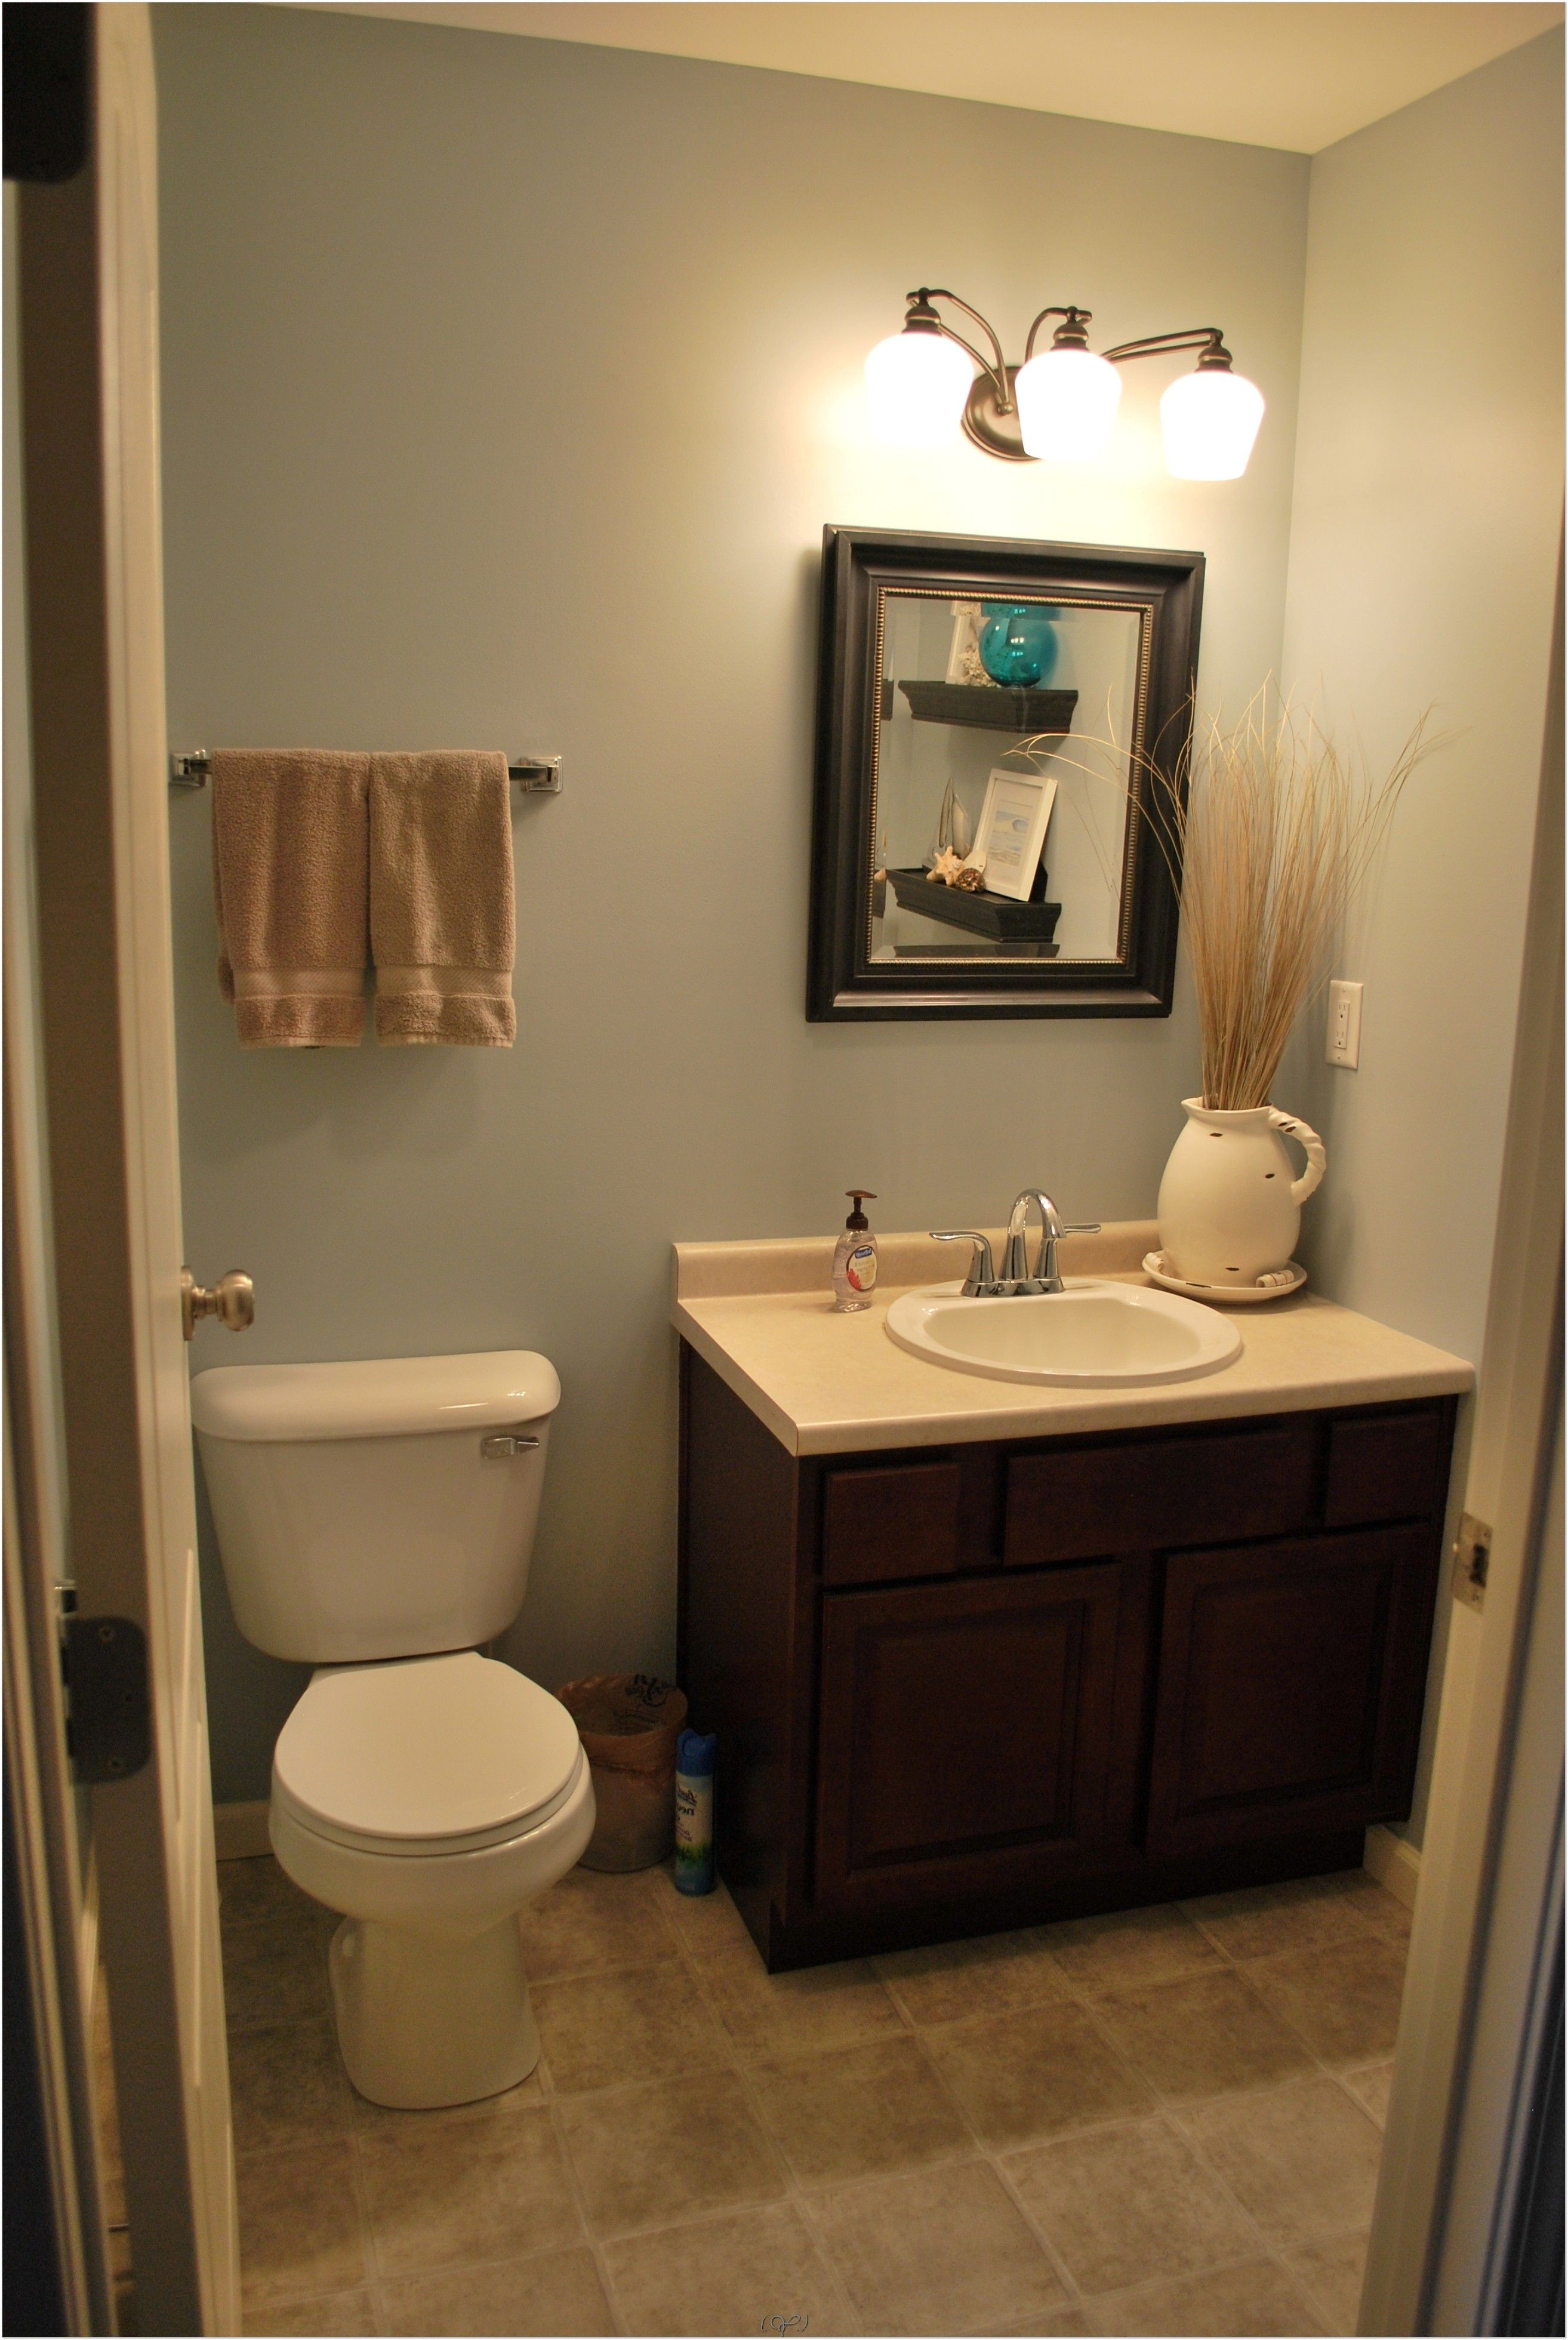 Your Home Need A Facelift Try These Home Improvement Ideas With